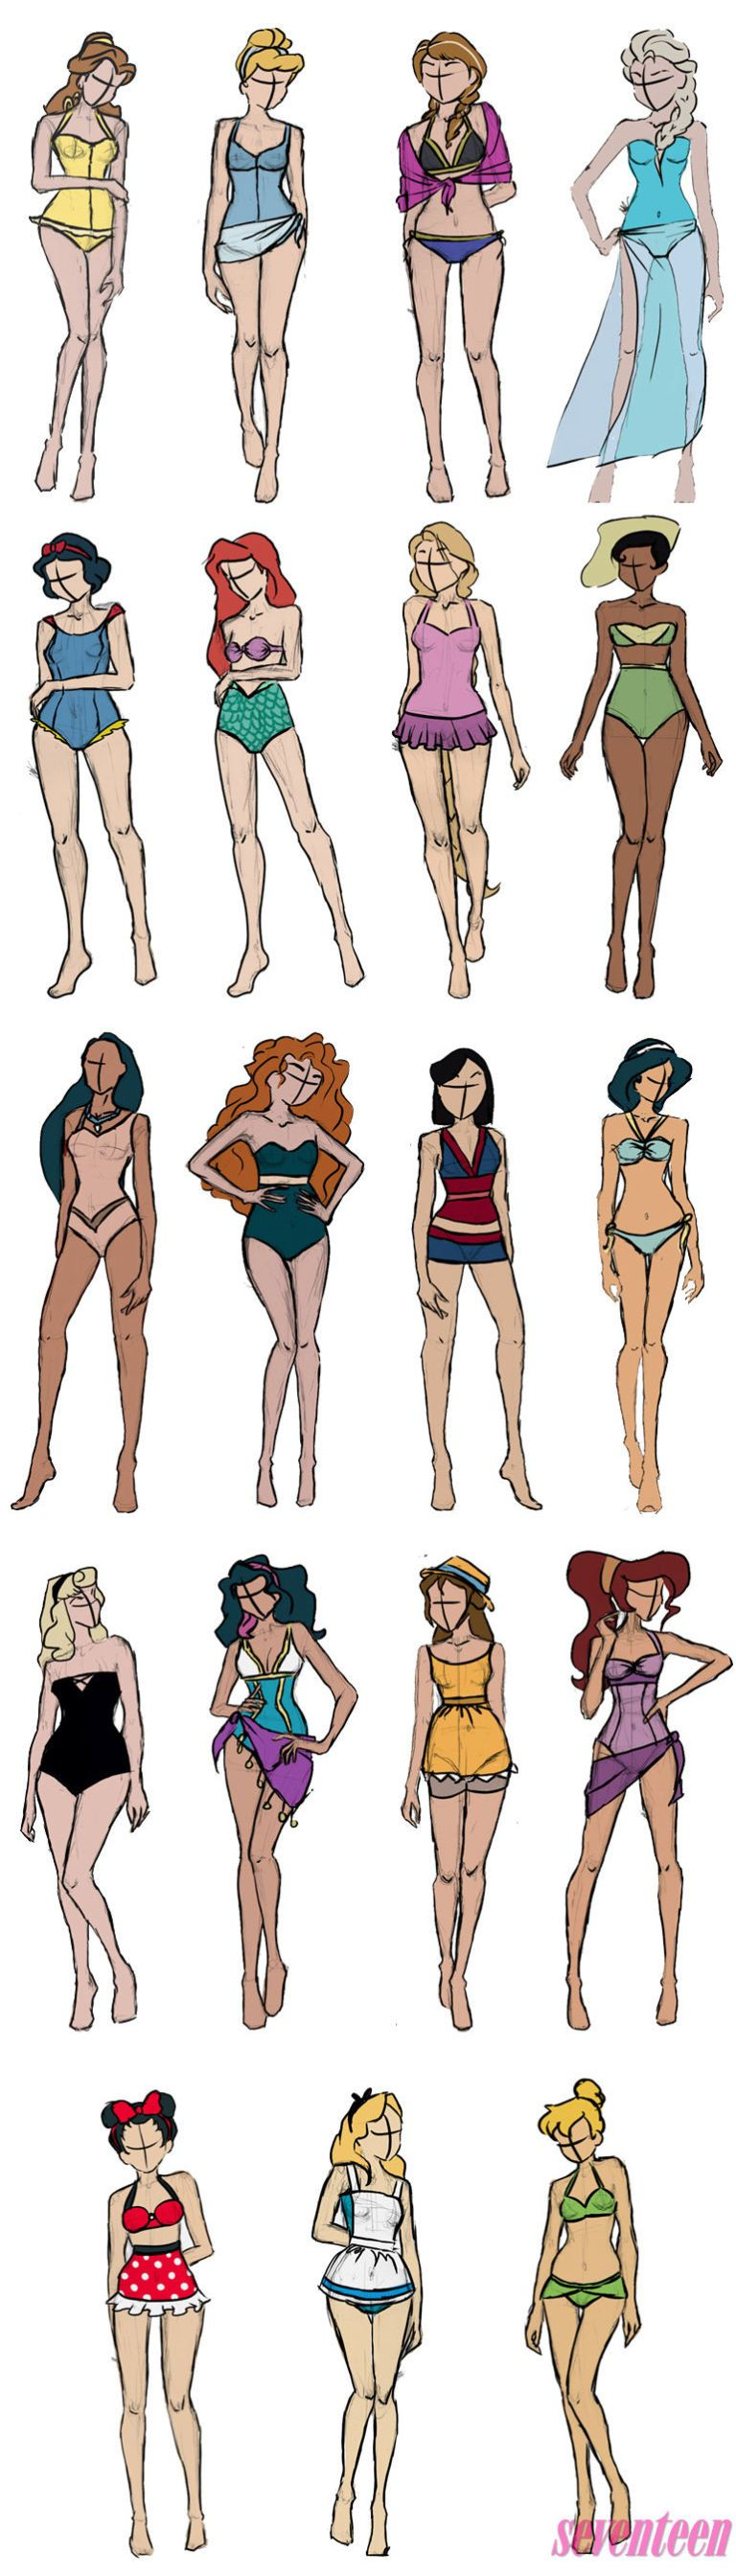 If The Disney Princesses Went On Spring Break This Is What